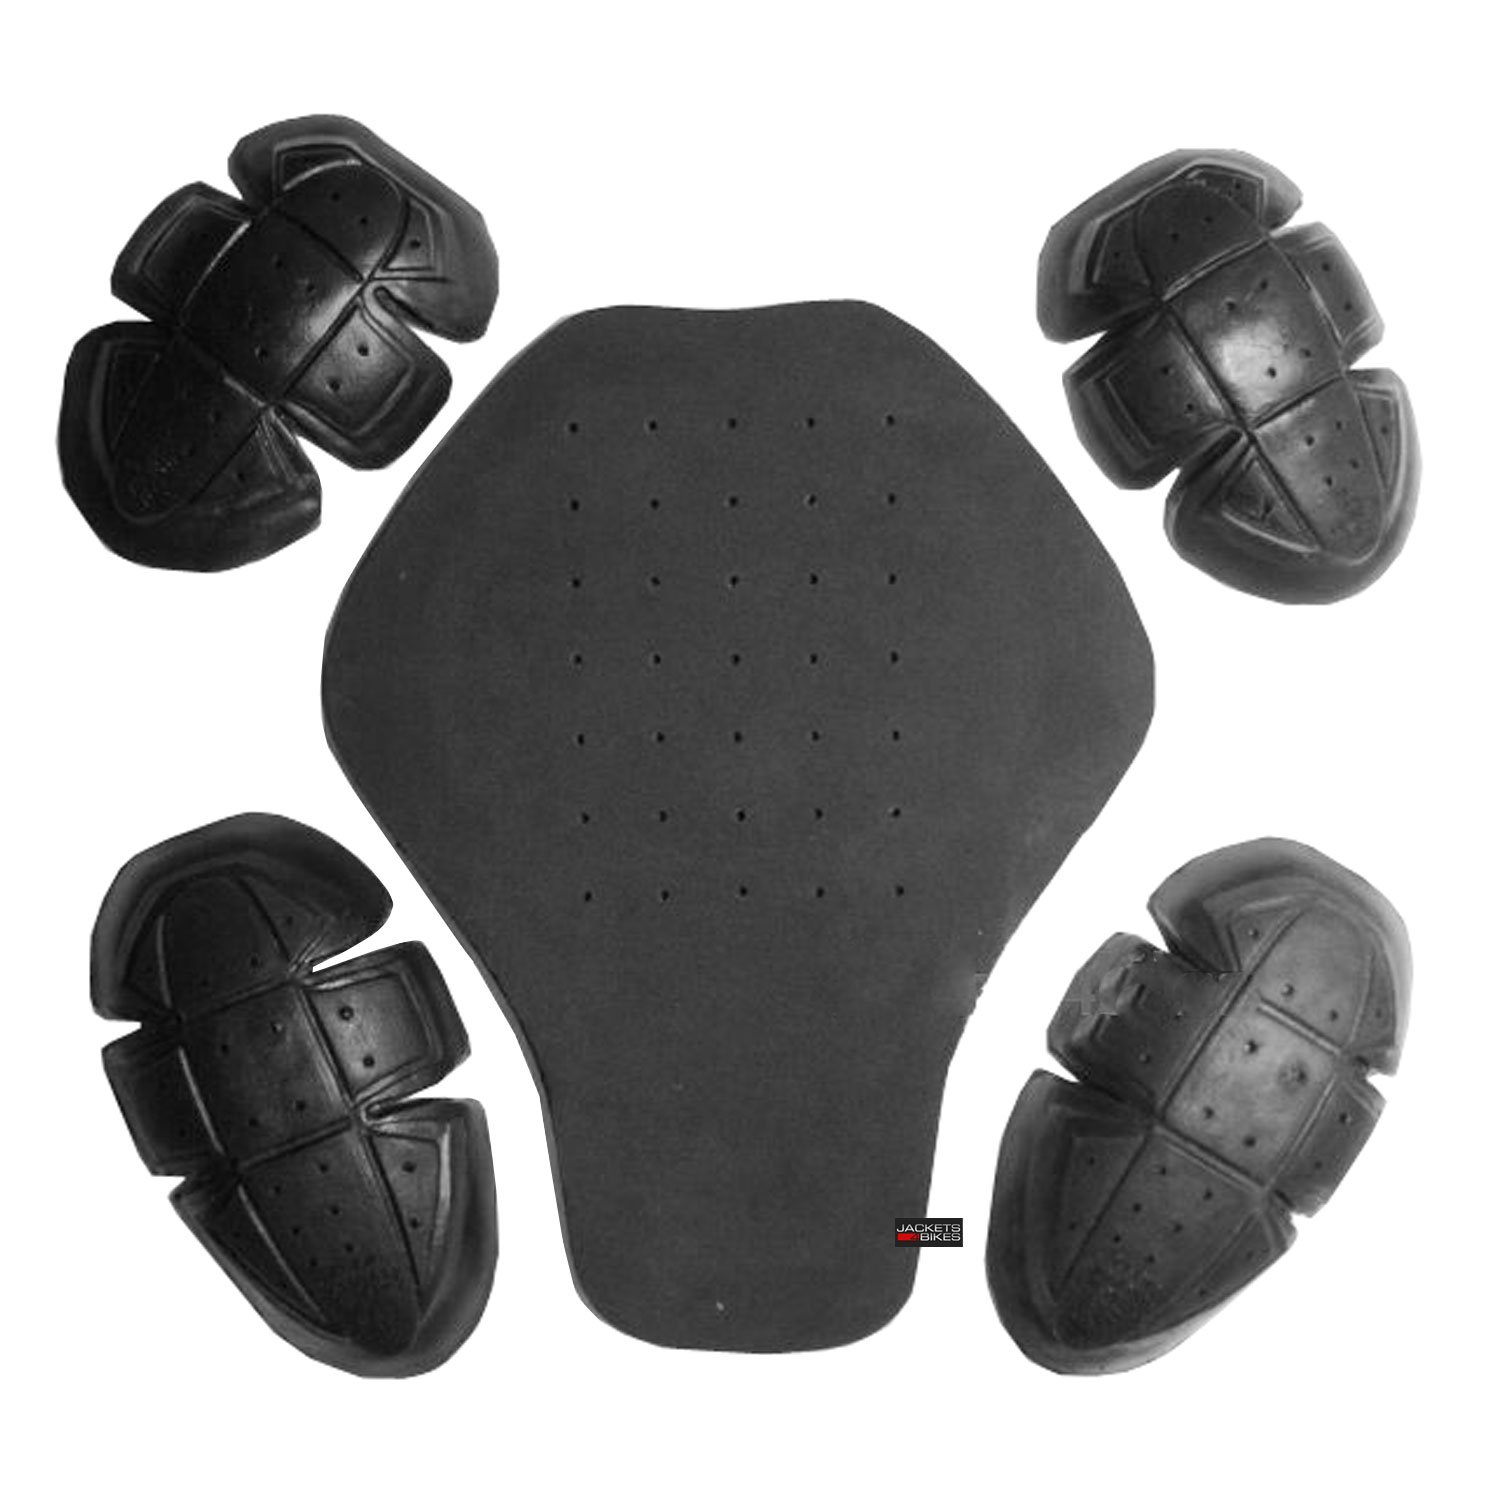 5PC CE Certified Advanced PU Armor for Motorcycle Biker Jackets Removable Set Jackets 4 Bikes